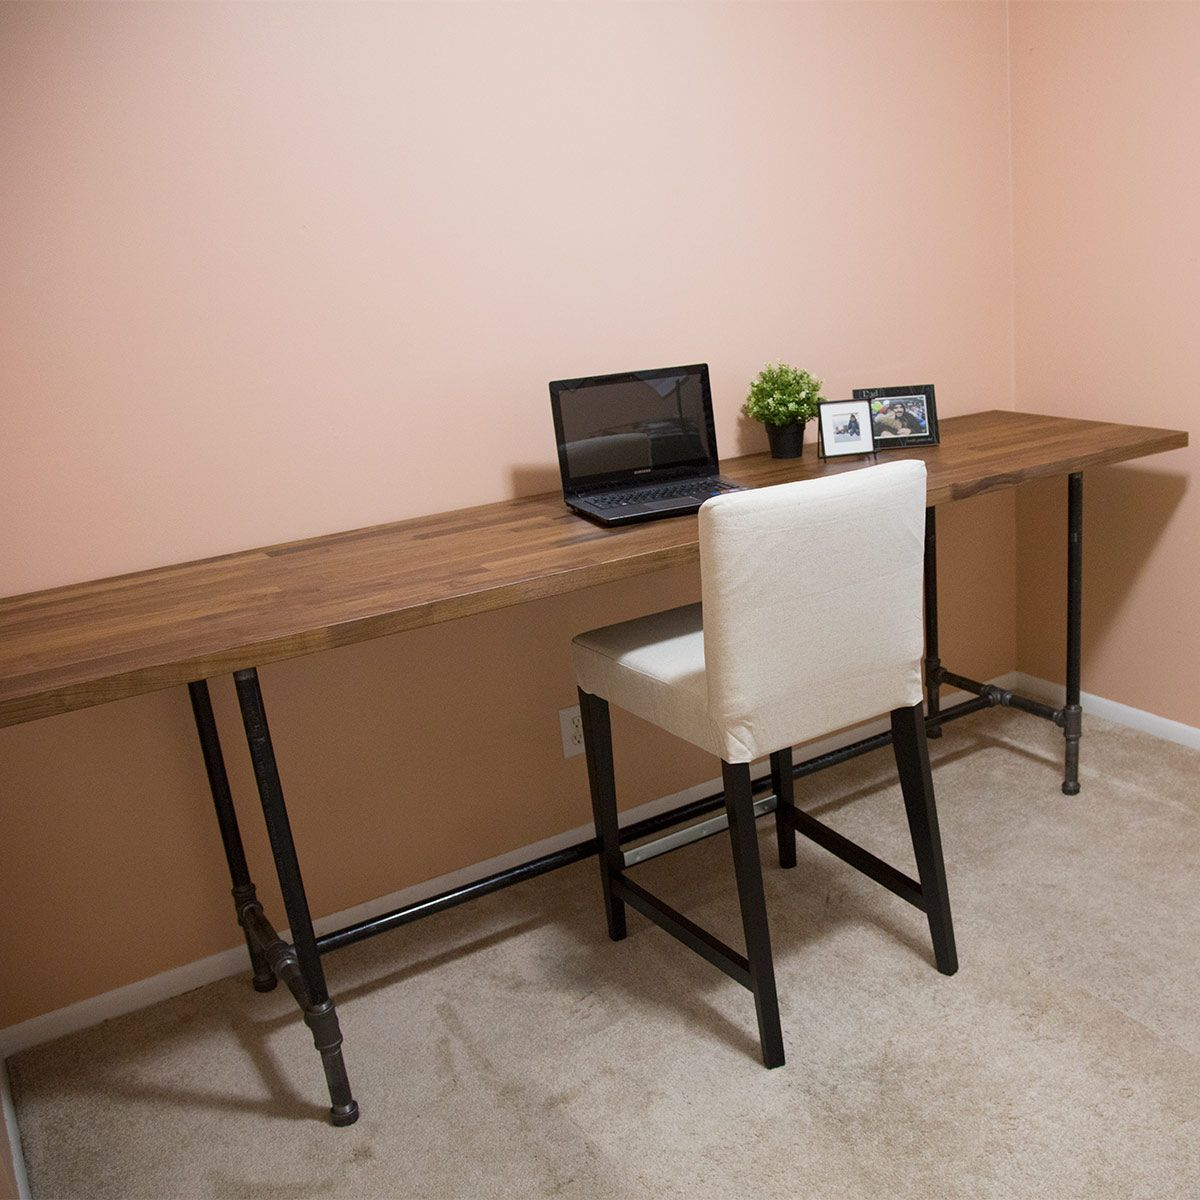 How to Build a Pipe Desk | Homestead Helps | Pinterest ...